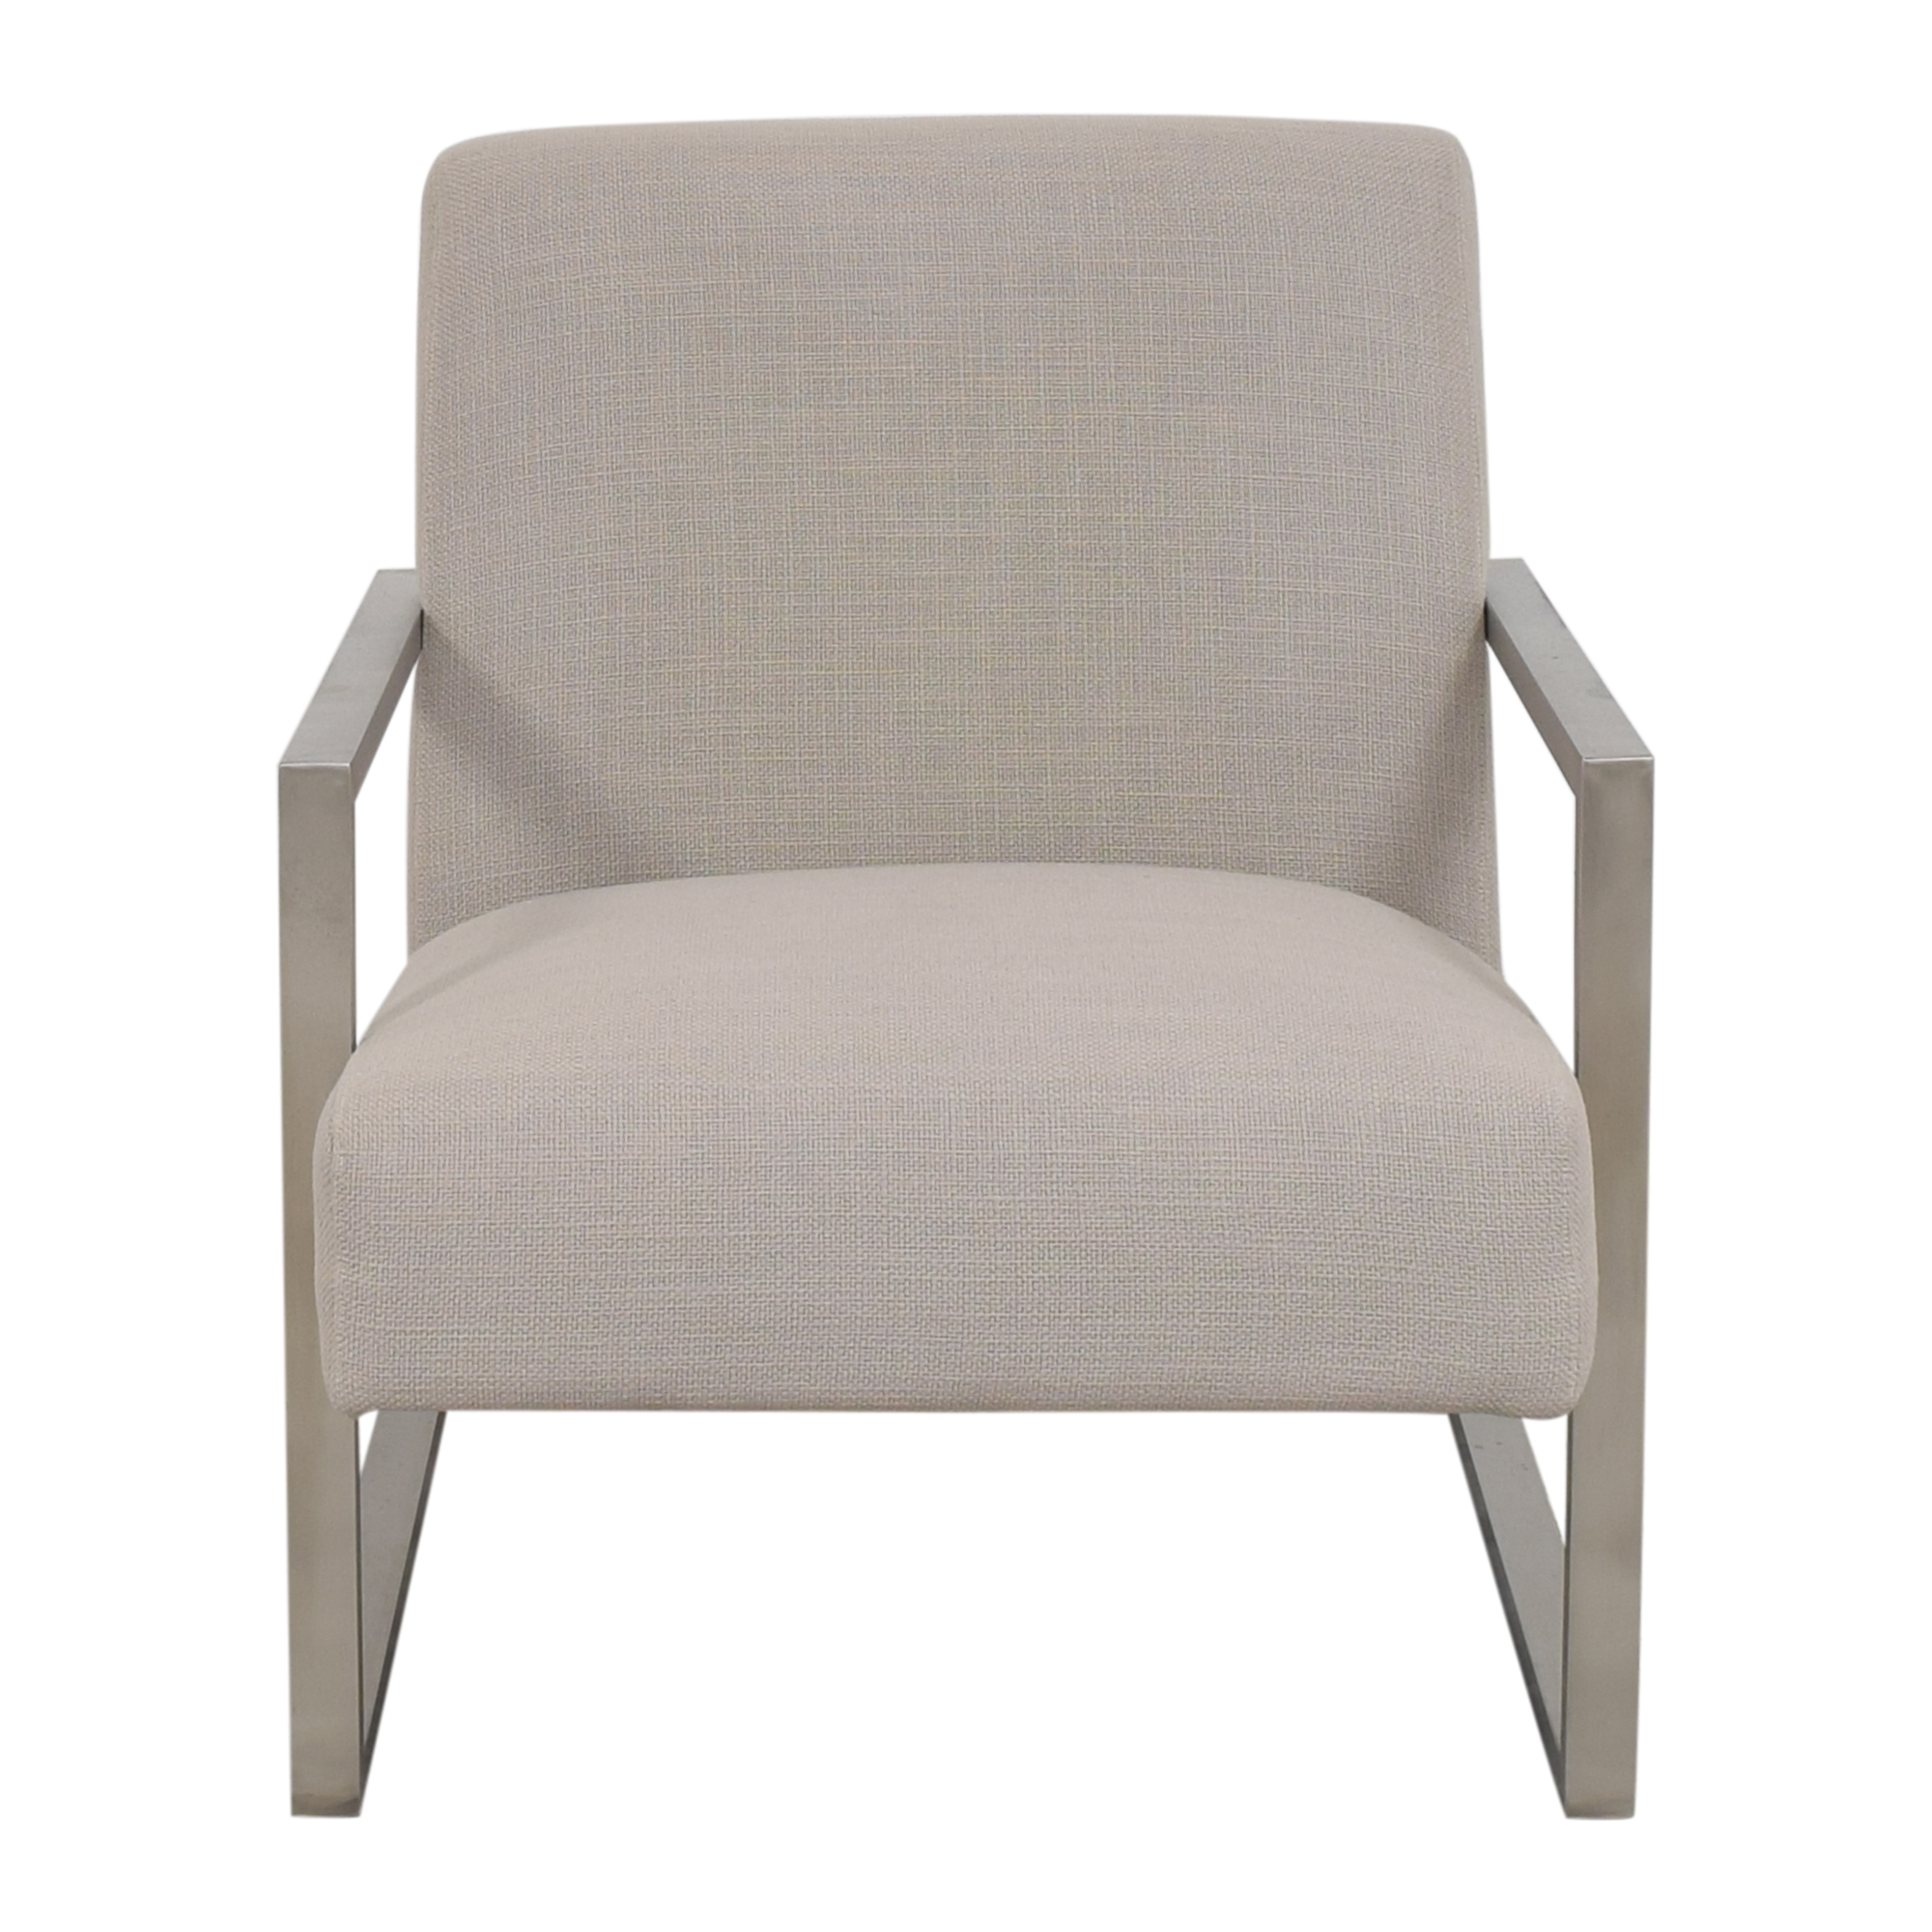 Armen Living Armen Living Skyline Accent Chair price